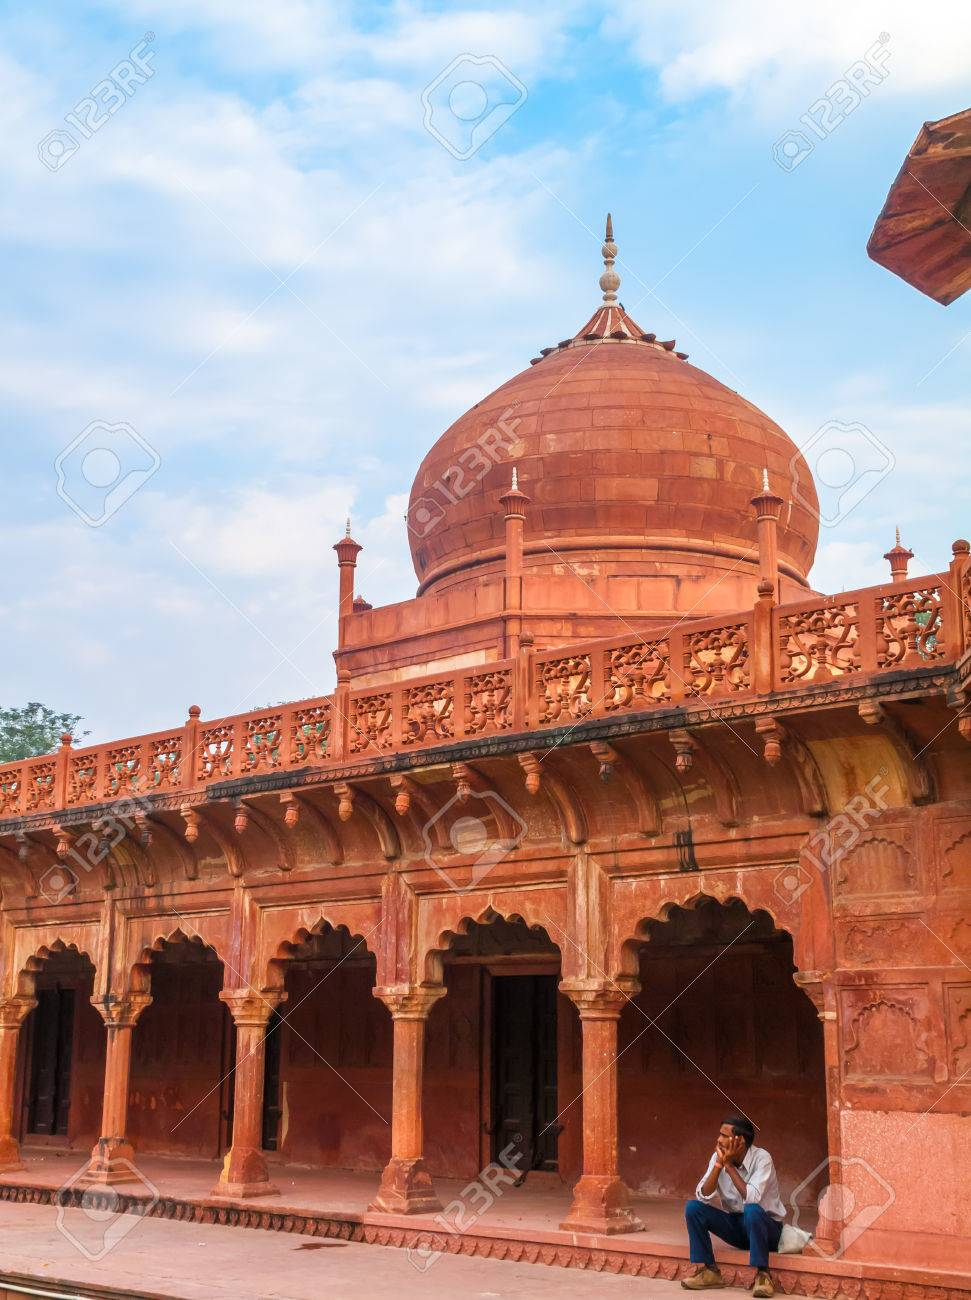 agra fort agra india oct 14 2009 mughal architecture near